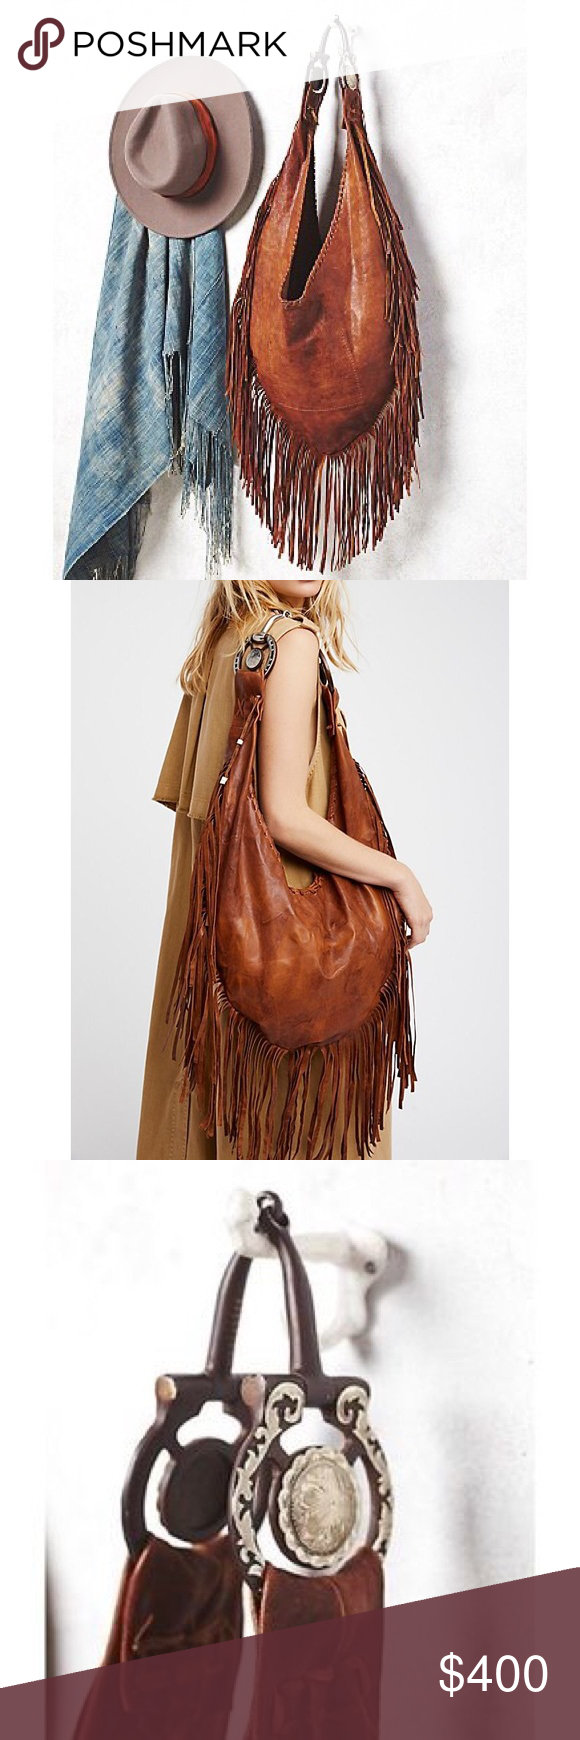 e8ec1f600702 Free People Willow Fringe Hobo Bag in Brown This bag is amazing in person!  Brand